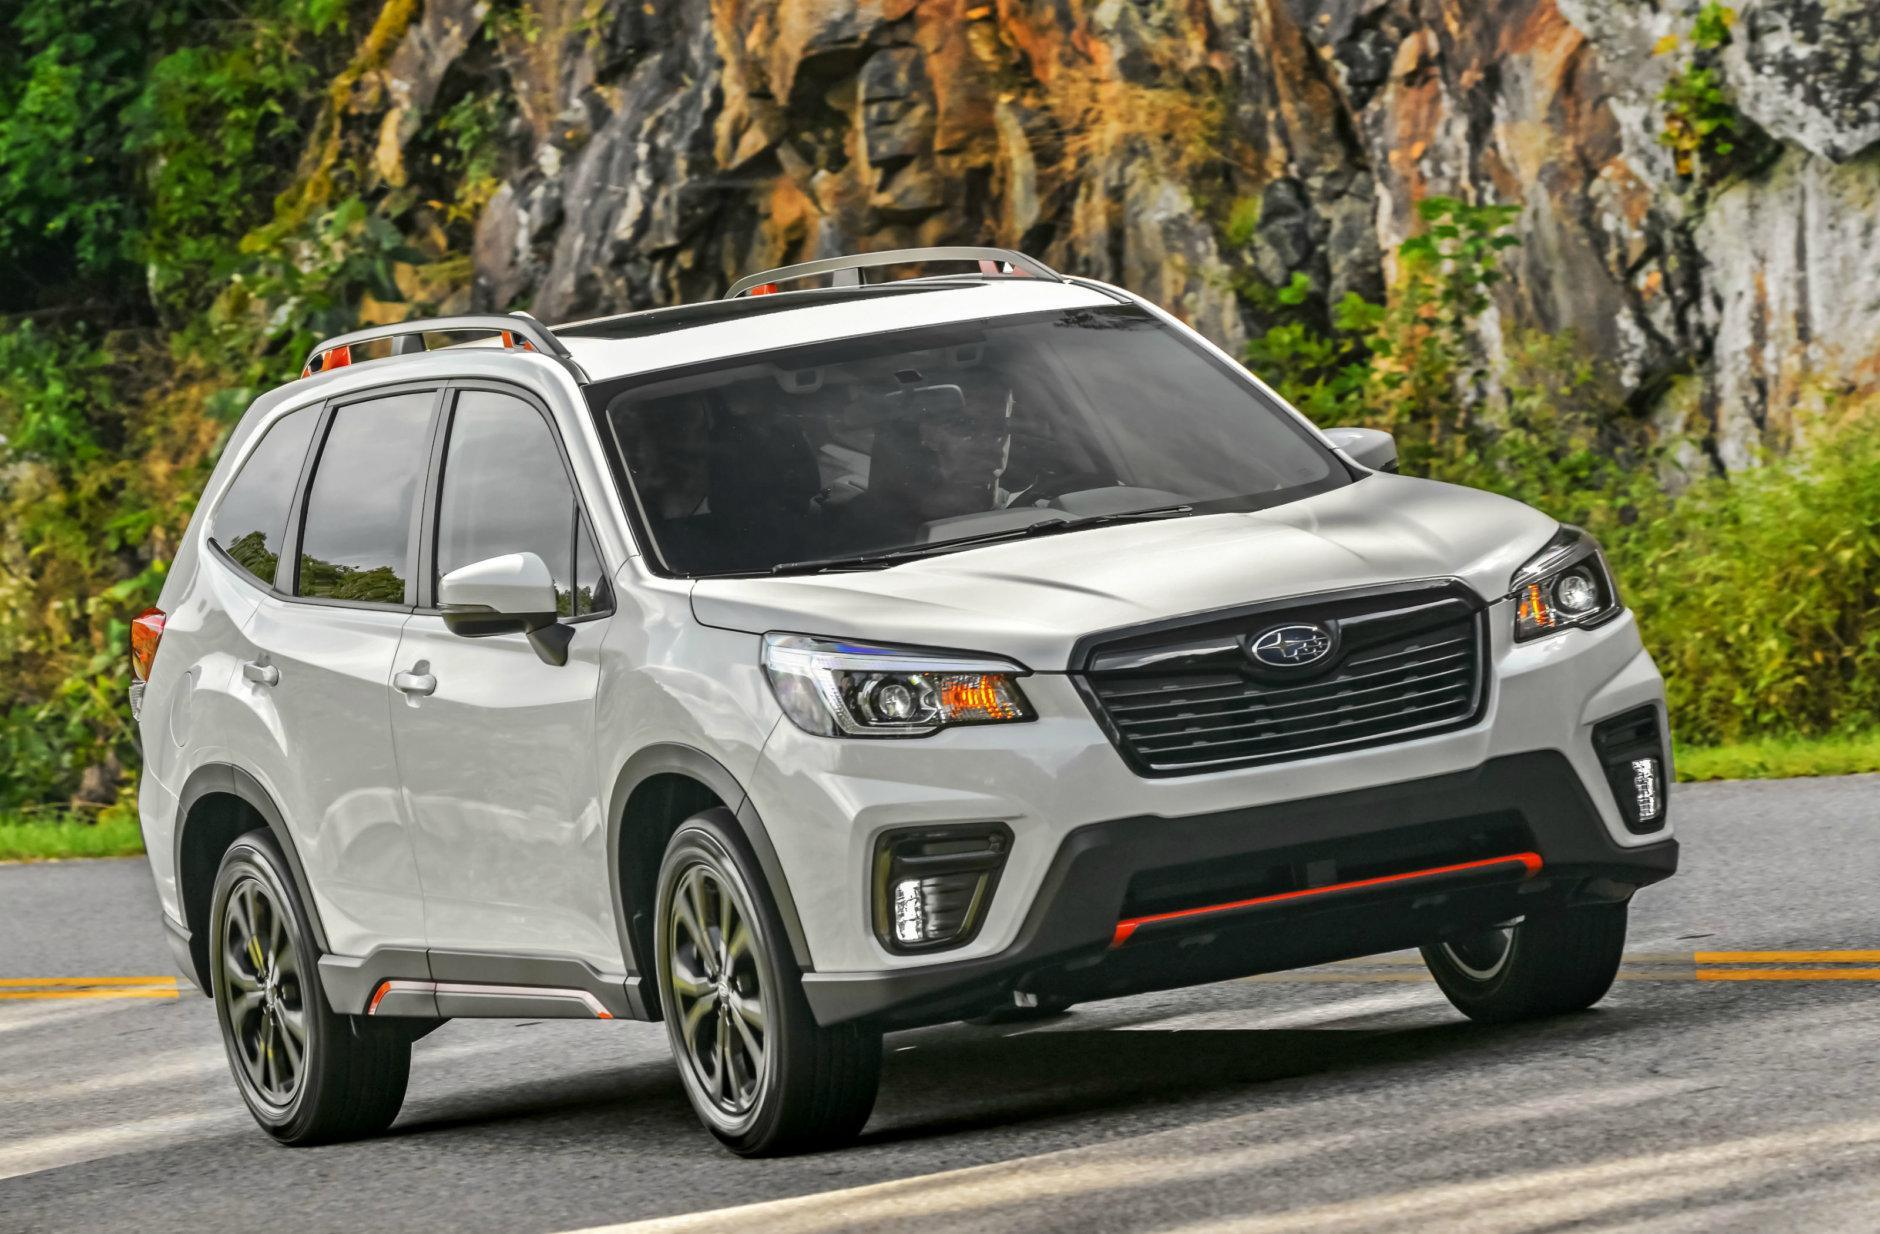 2019 Subaru Forester Lease Deal: $255 per month for 36 months with $2,055 due at signing (Courtesy Subaru of America)